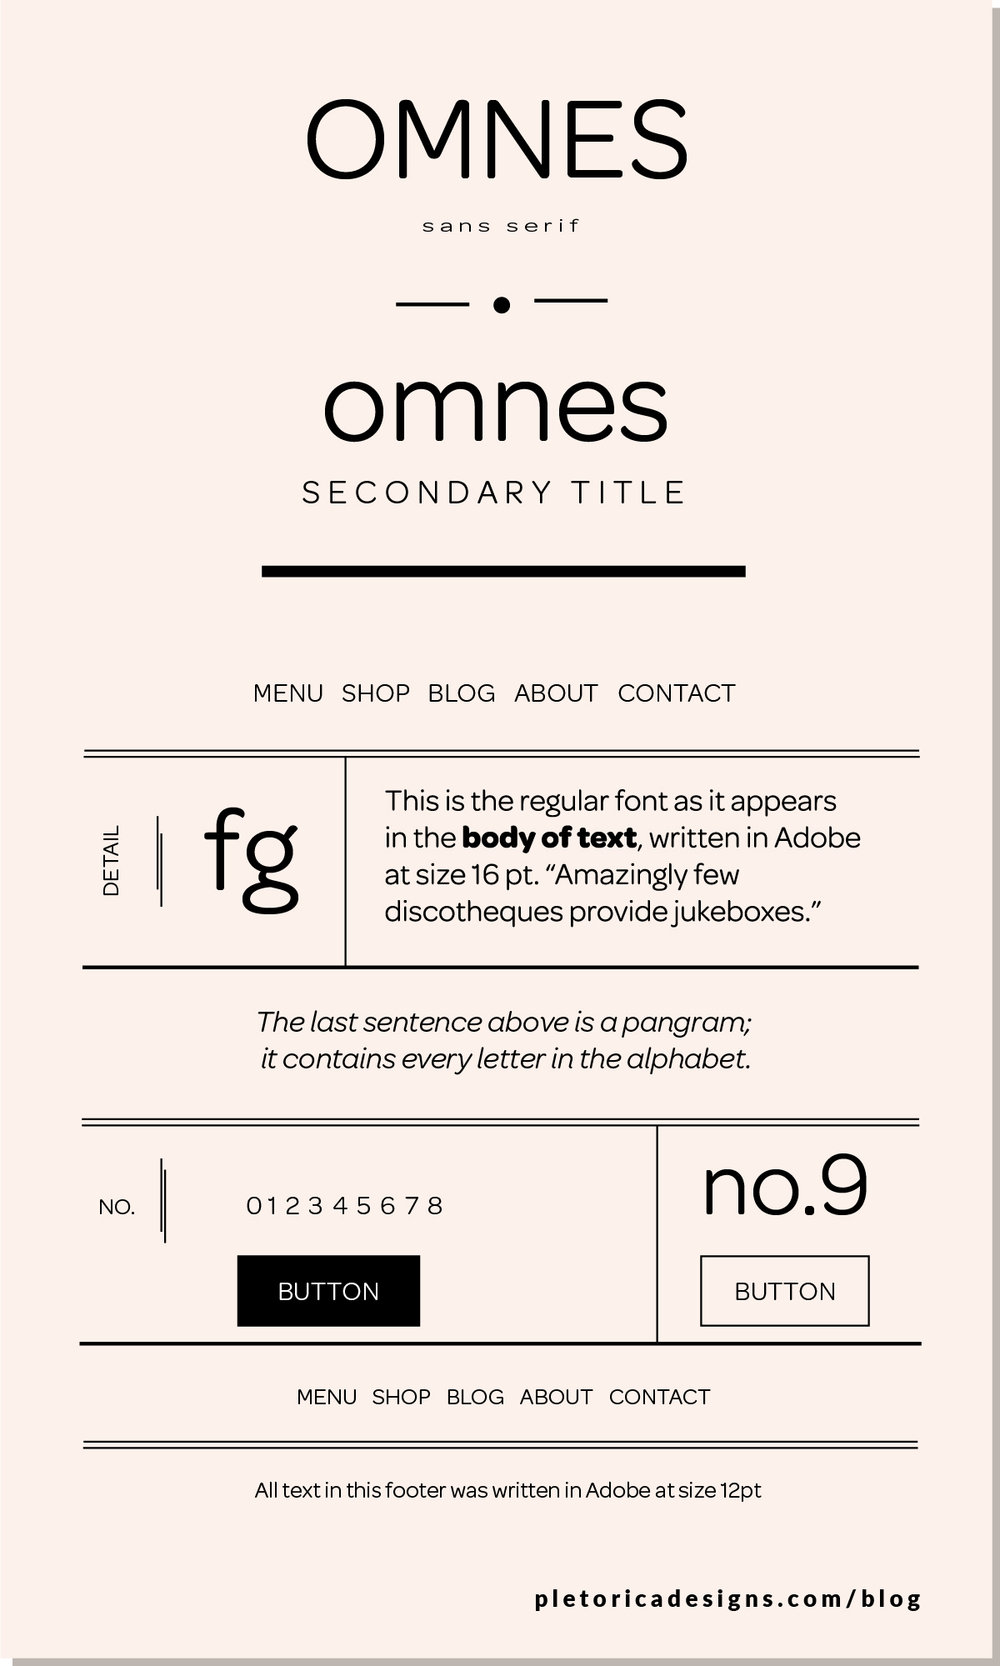 LET'S TYPE: Omnes — PLETÓRICA DESIGNS